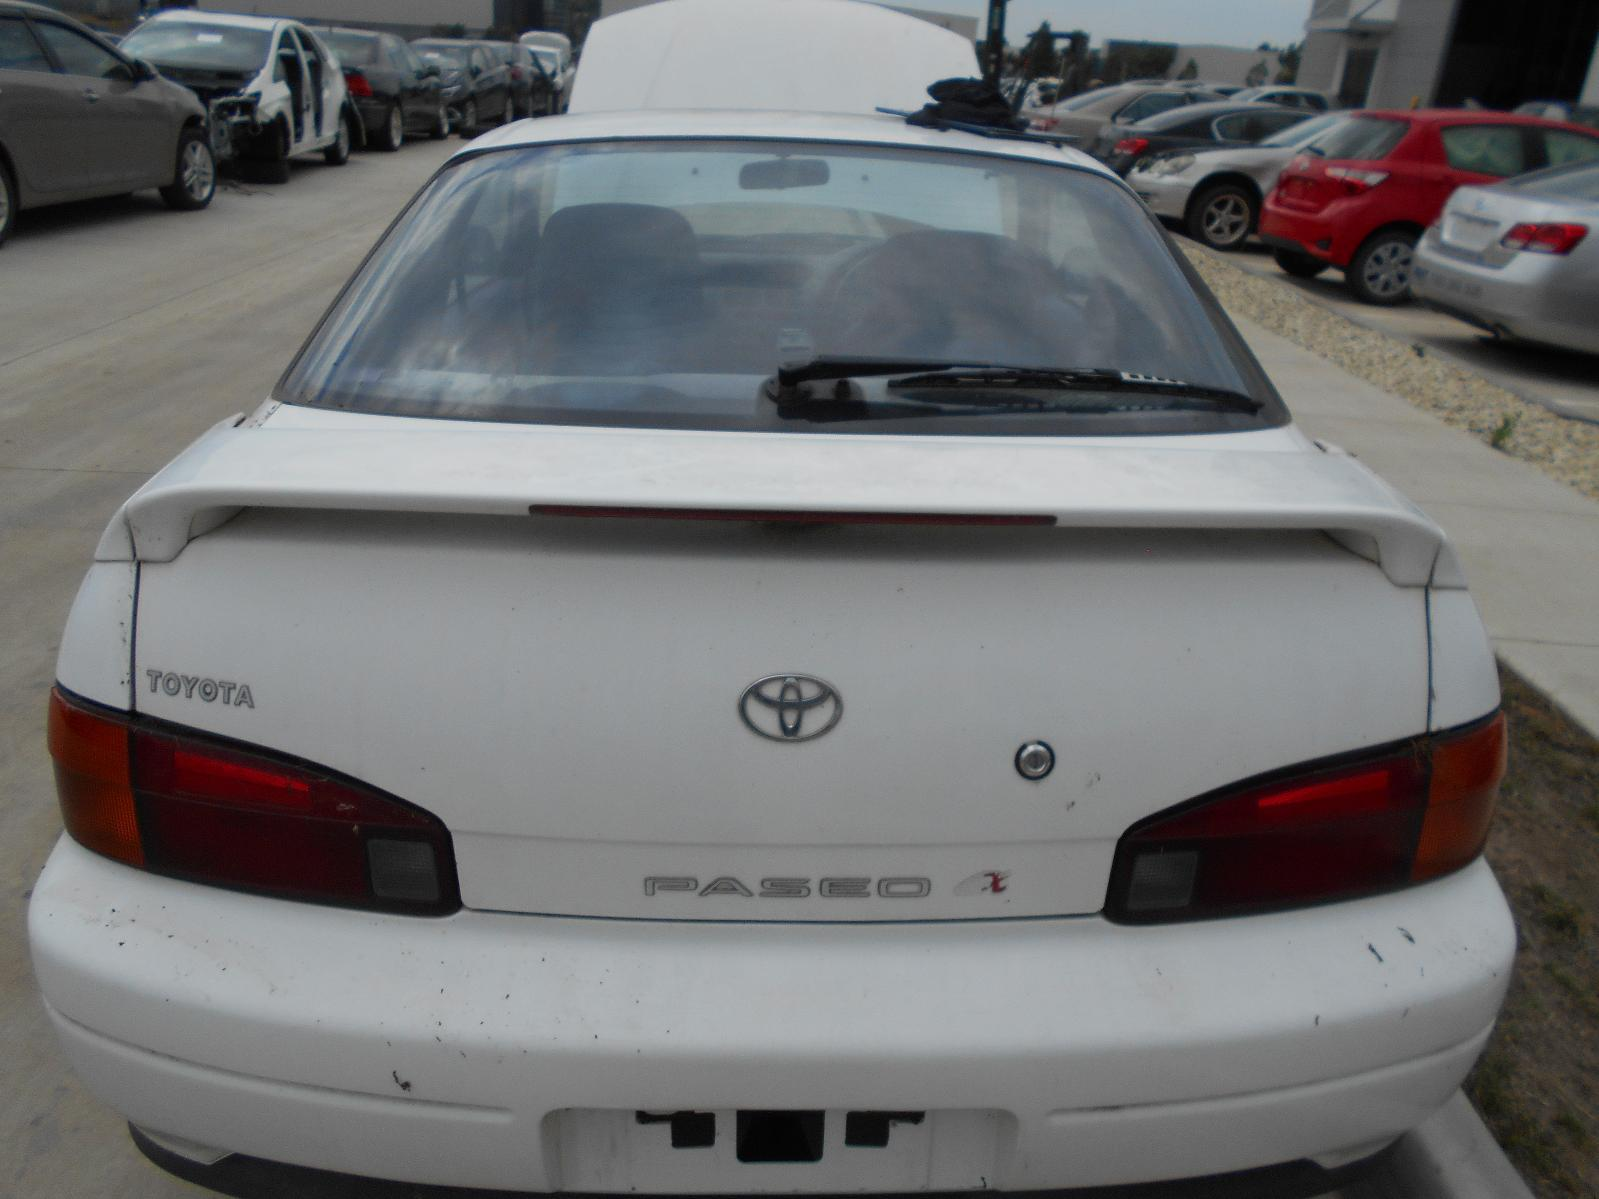 TOYOTA PASEO, Bootlid/Tailgate, BOOTLID, EL44, SPOILERED TYPE, 06/91-11/95